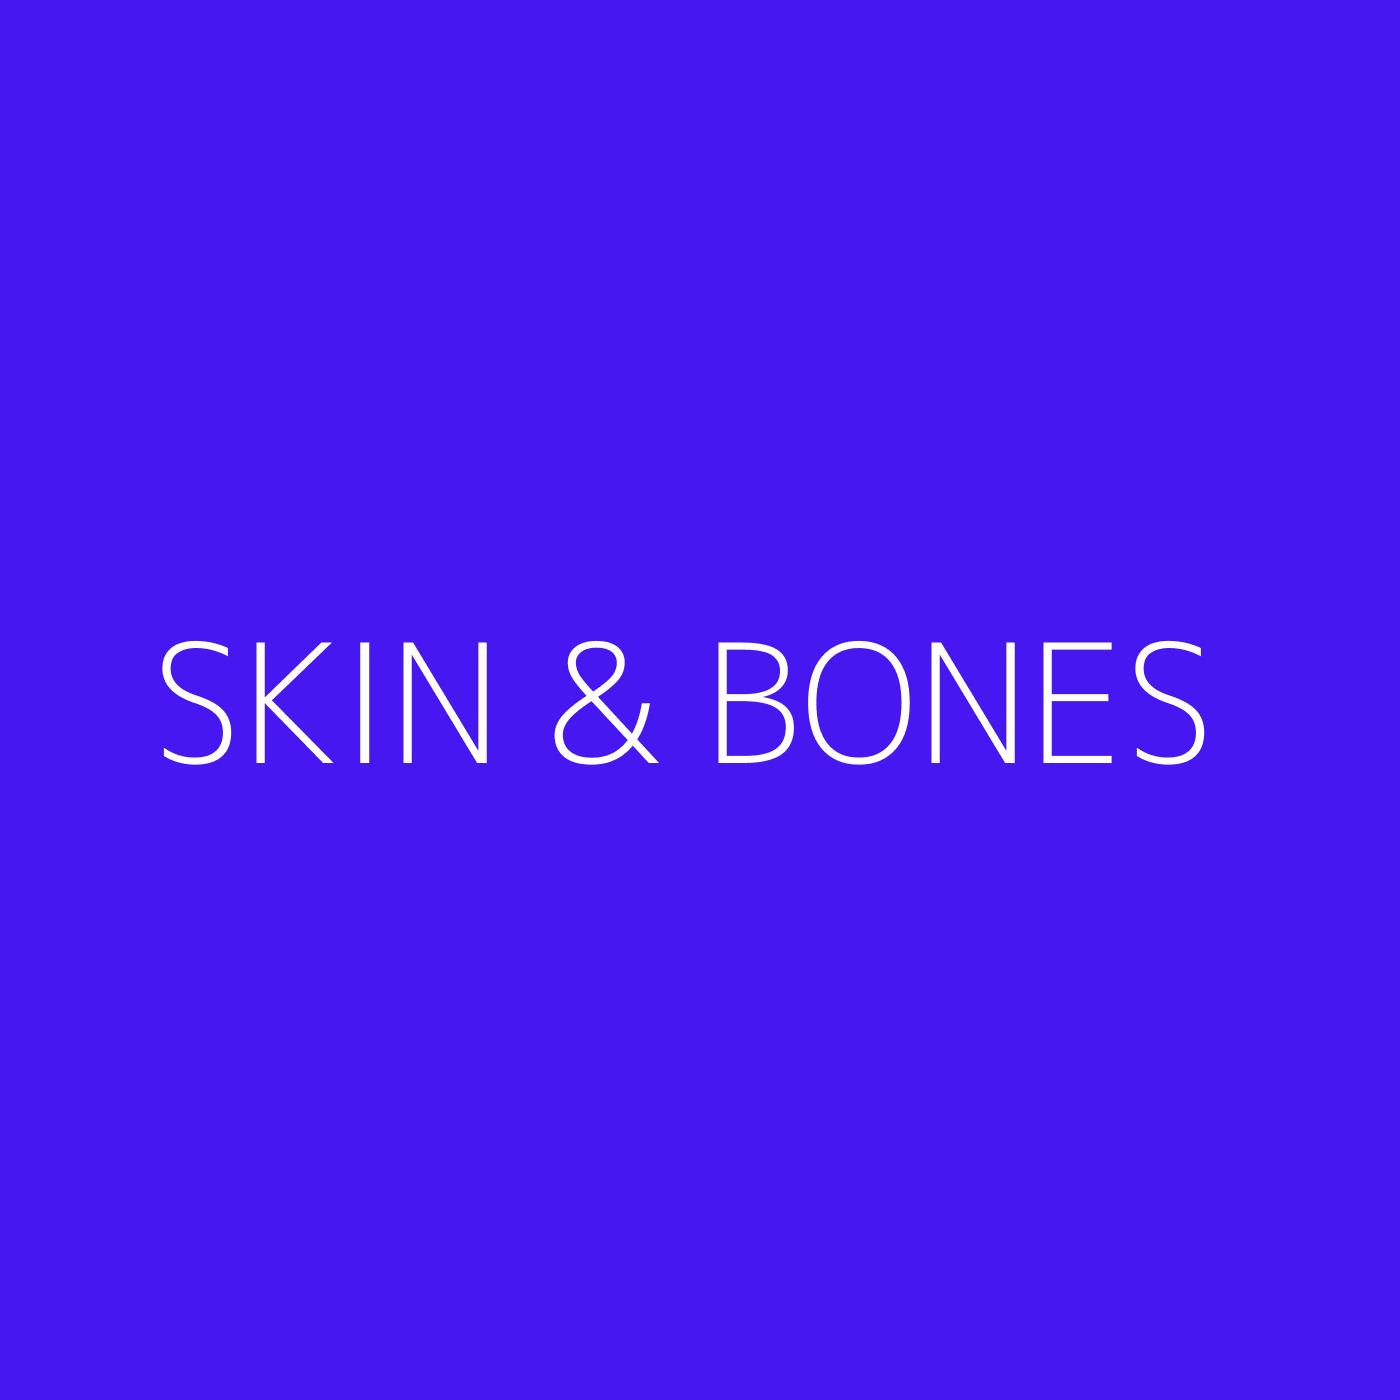 Skin & Bones Playlist Artwork